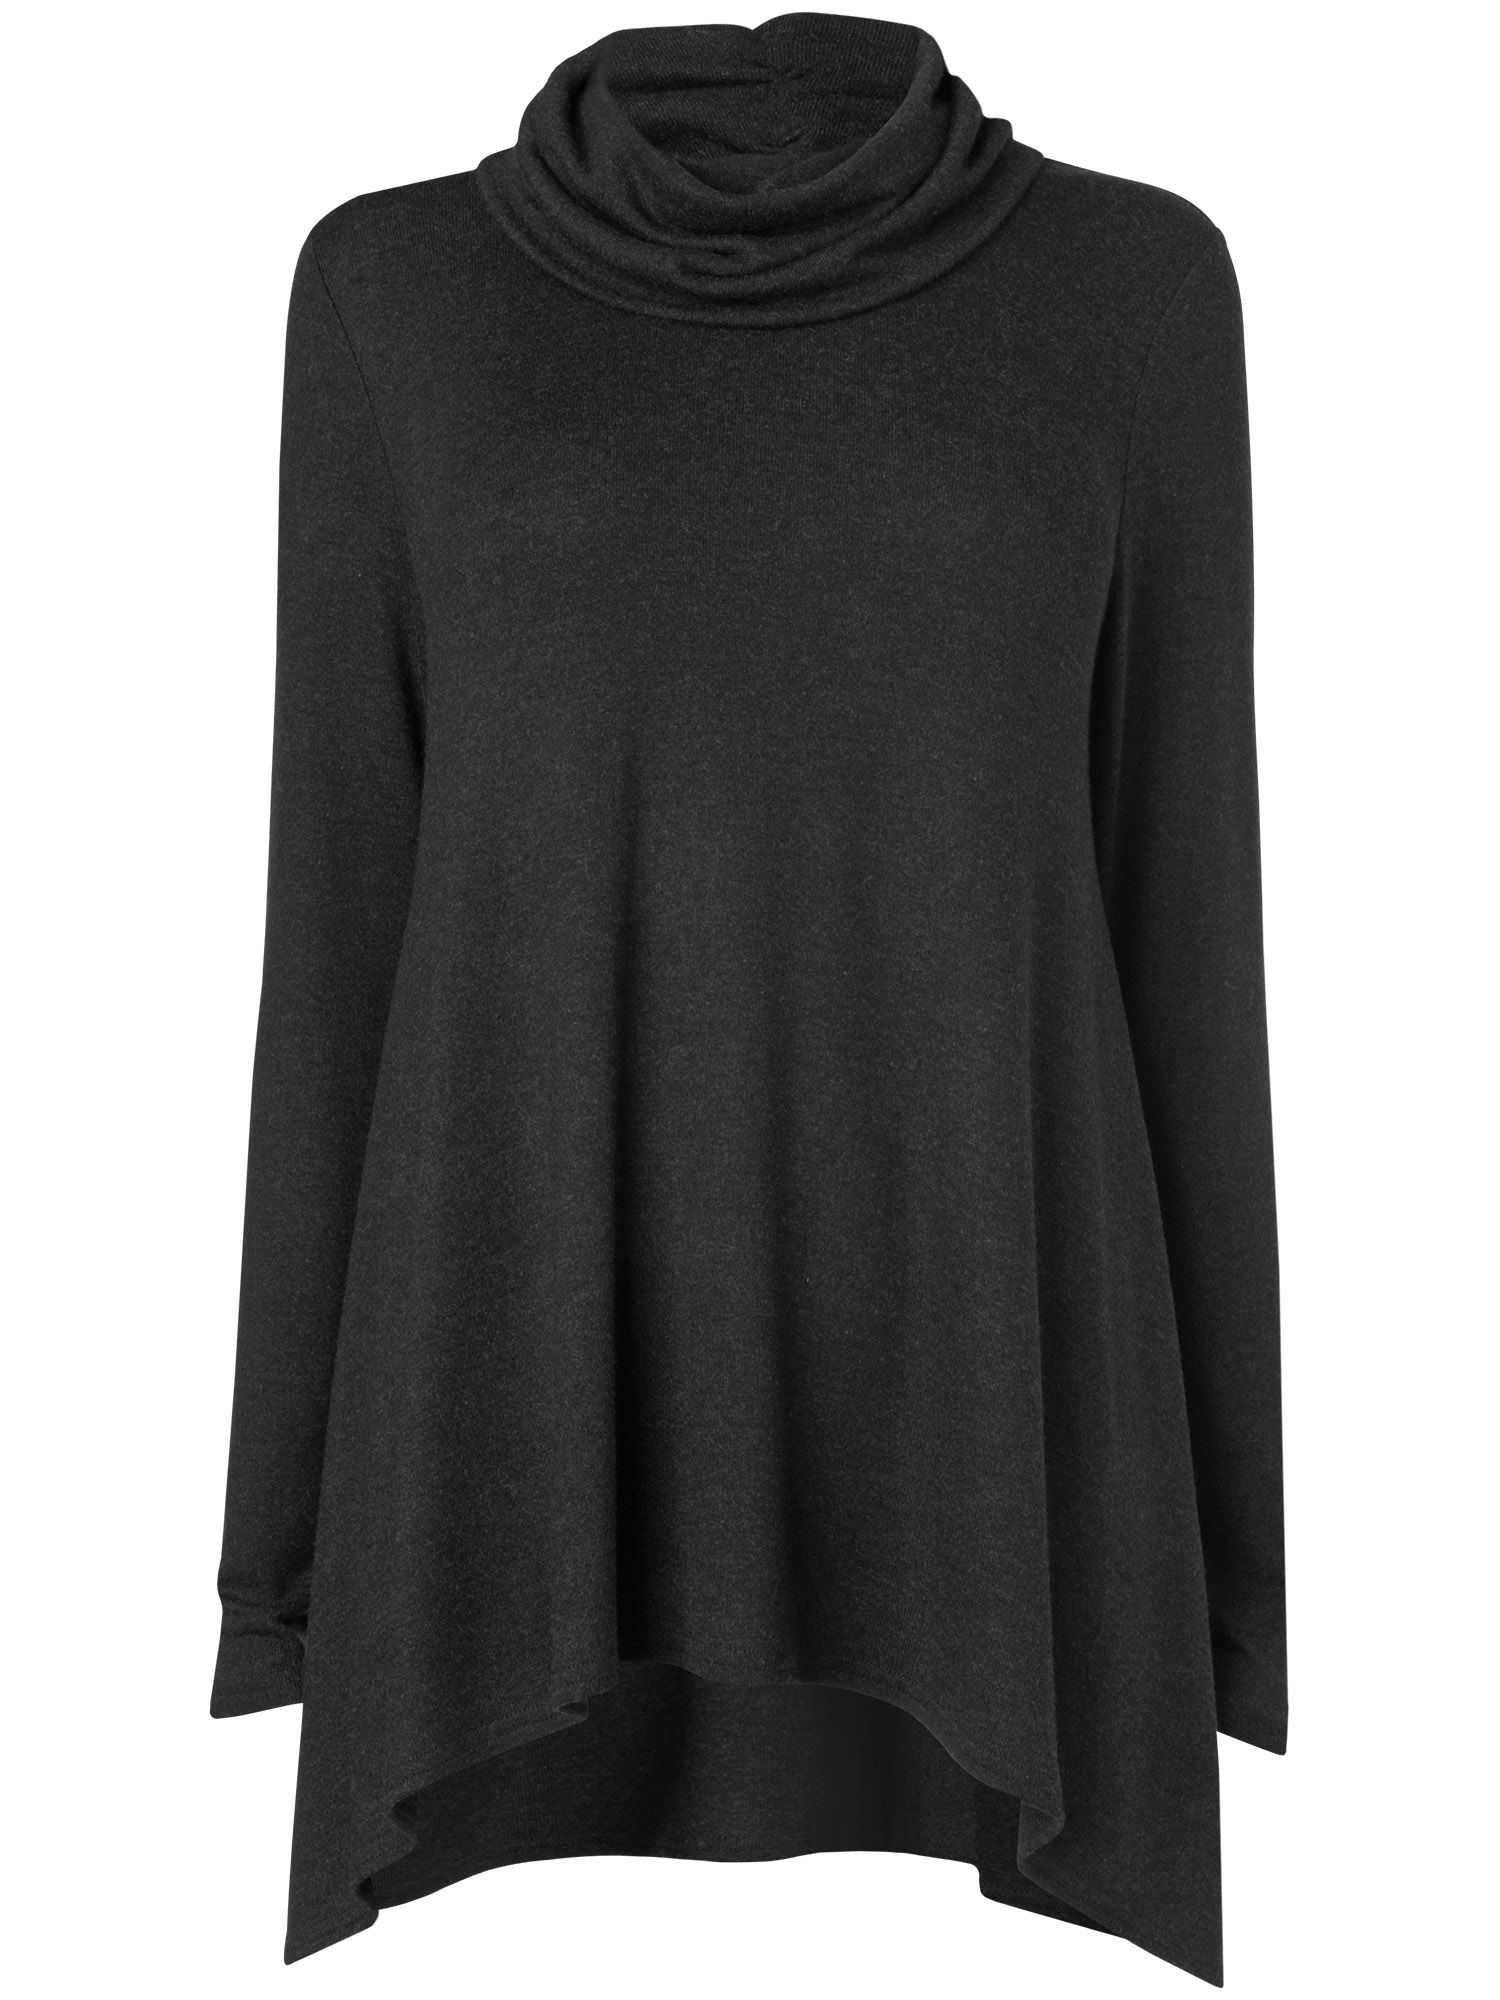 Nora roll neck top